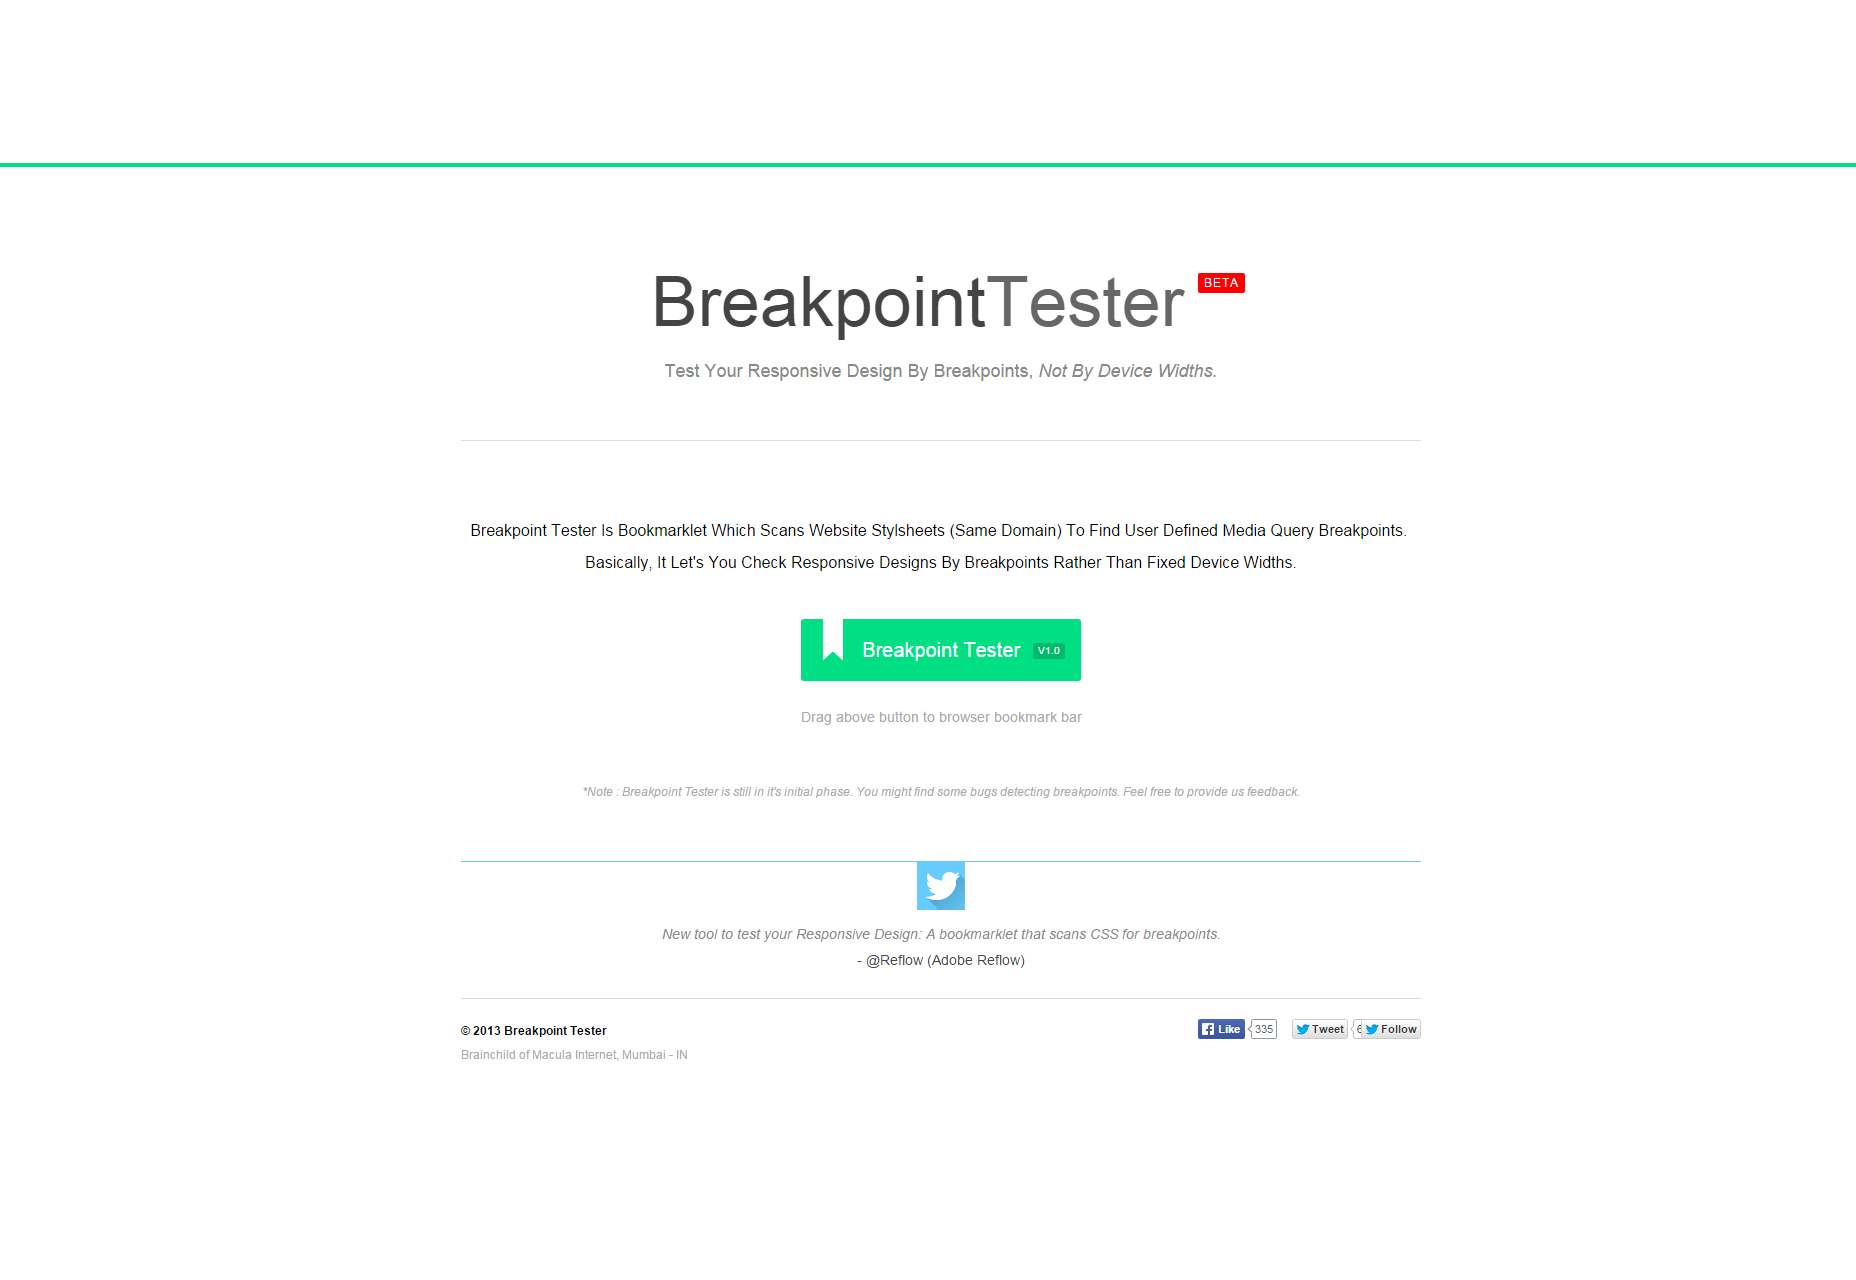 BreakpointTester: Breakpoints Testing Bookmarklet for Responsive Designs